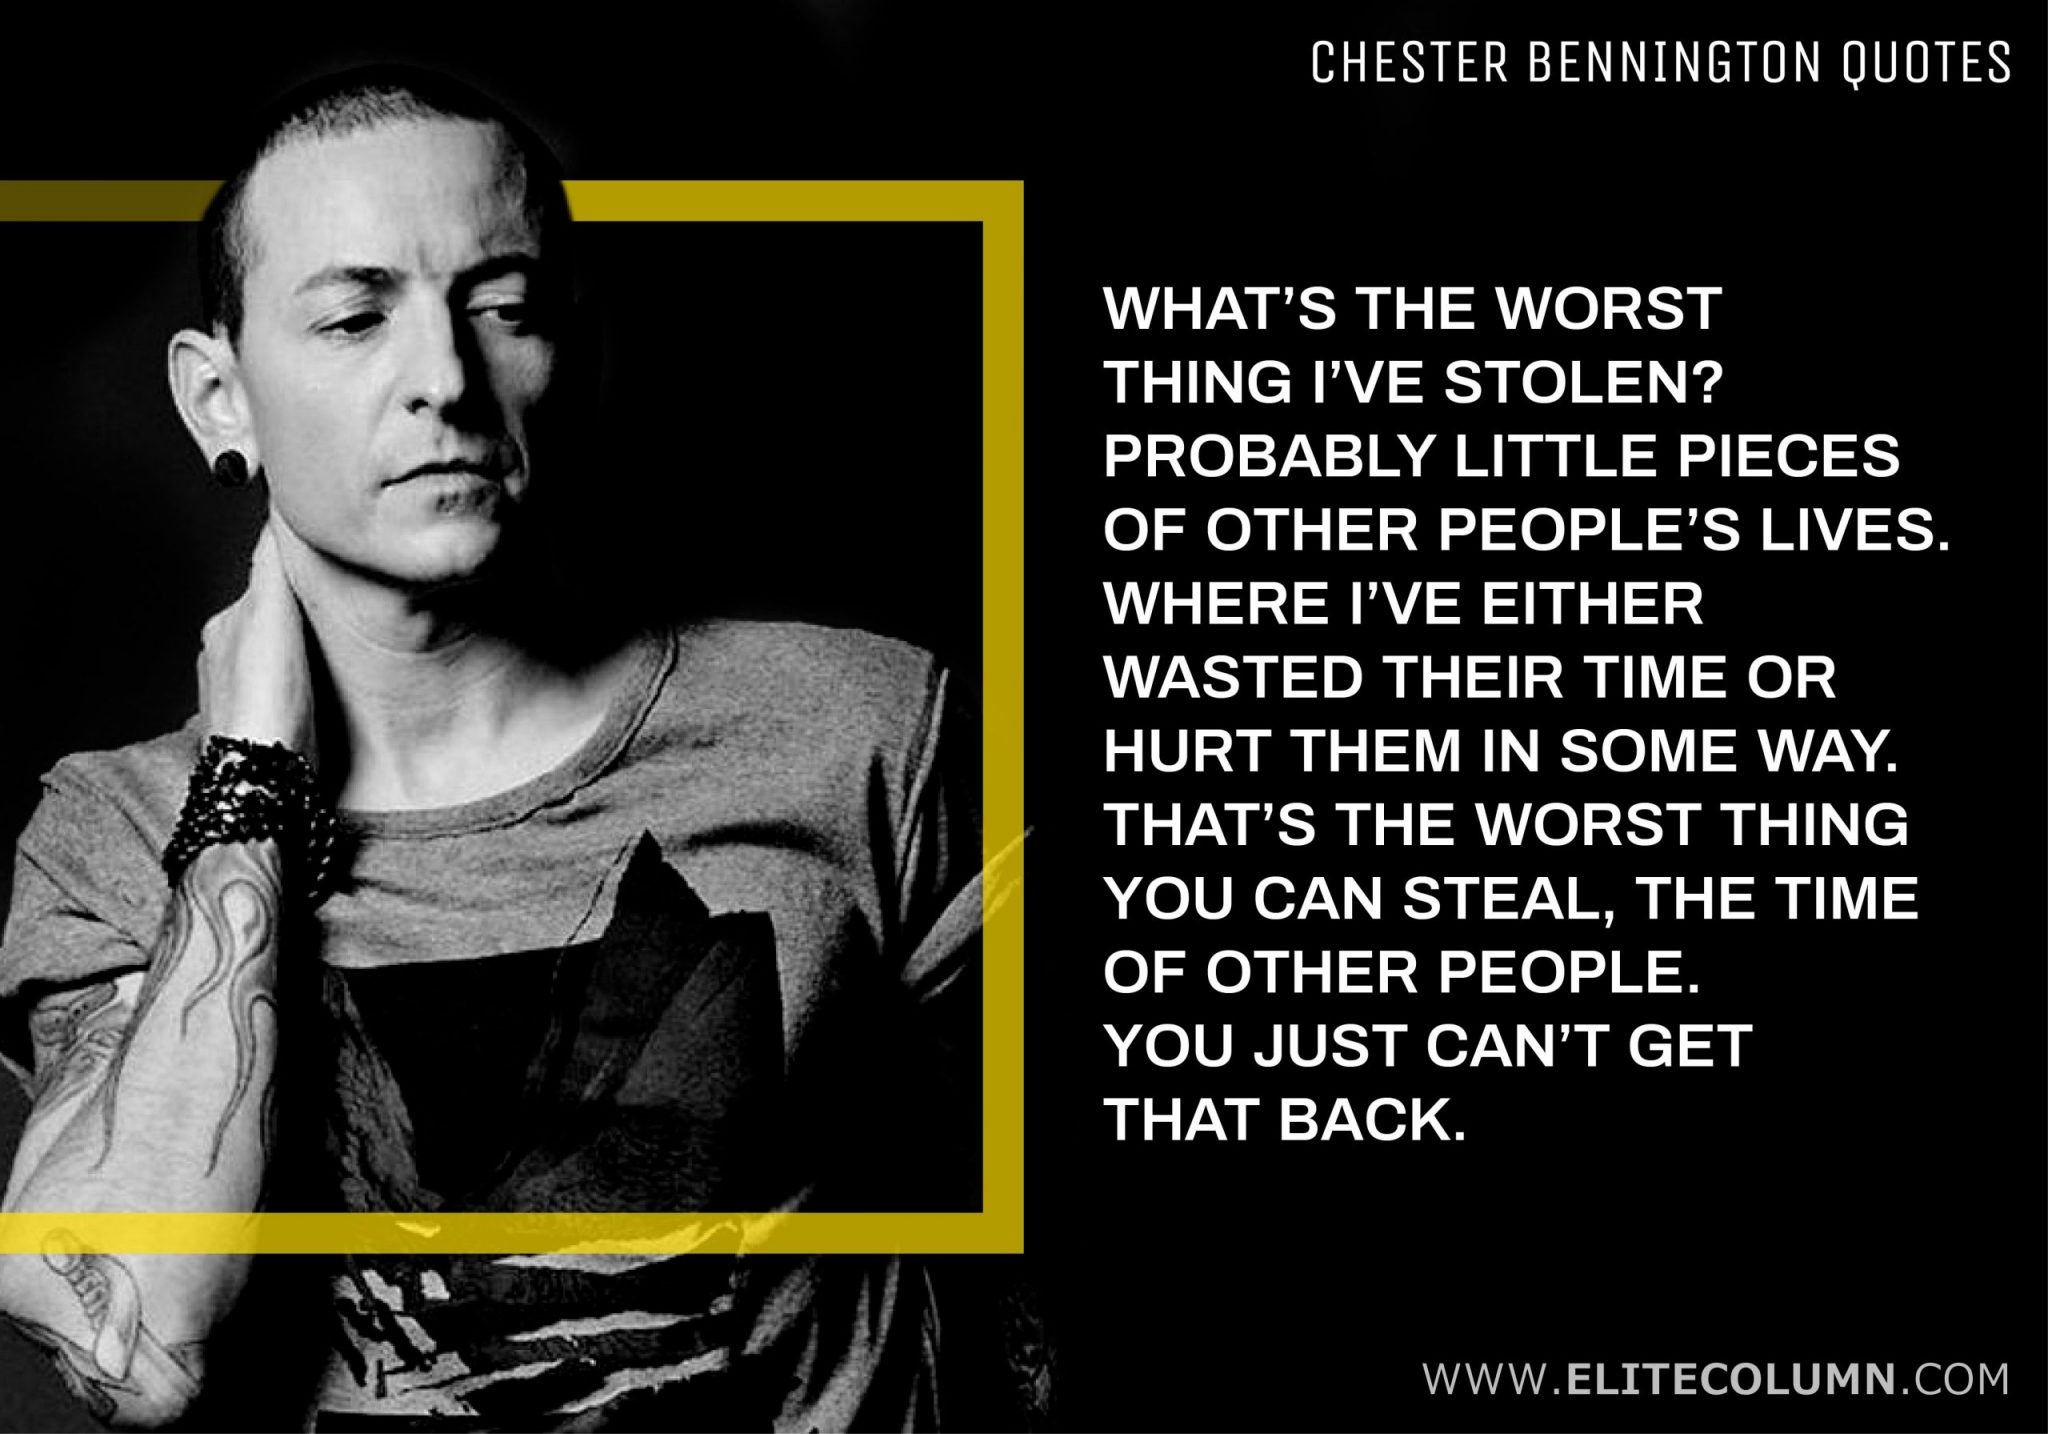 Chester Bennington Quotes (2)